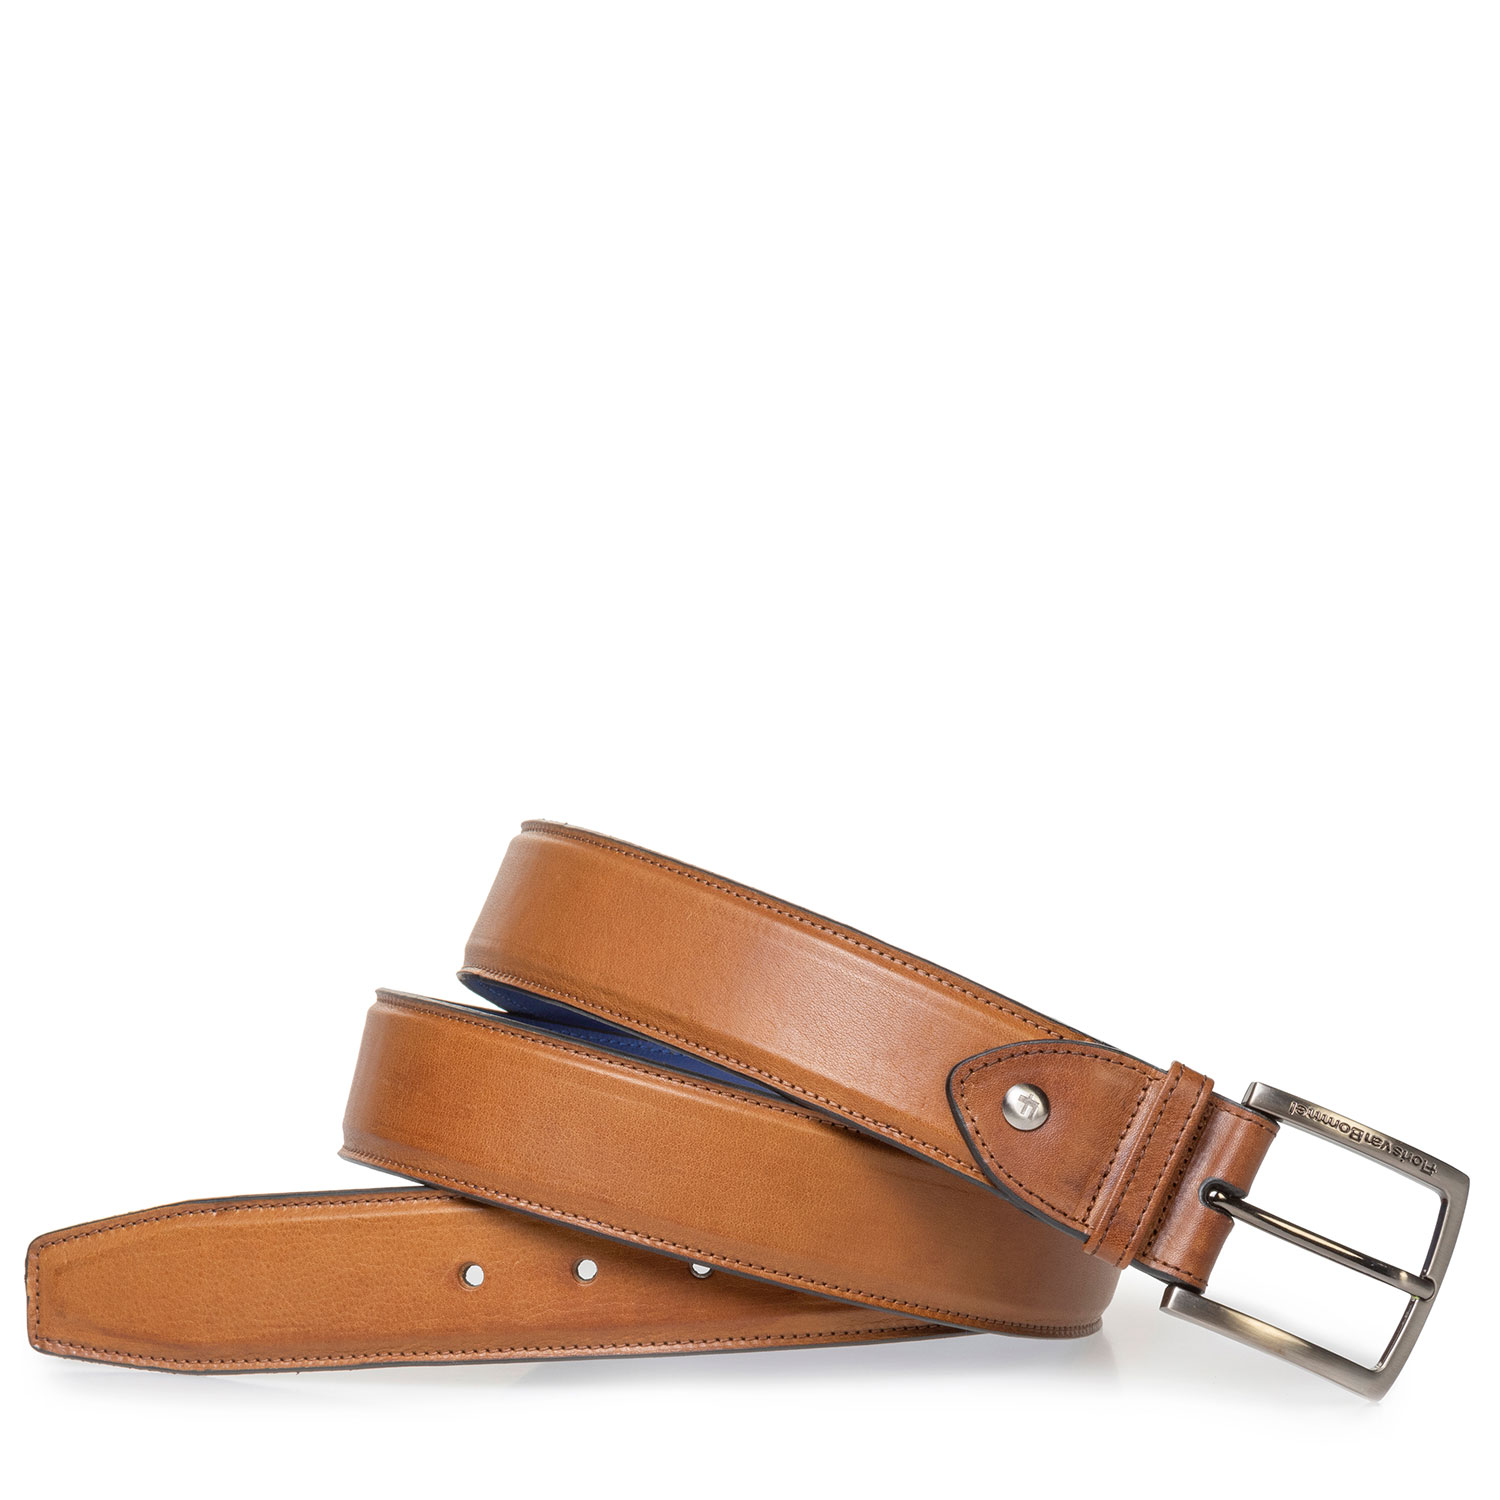 75189/60 - Belt calf leather cognac